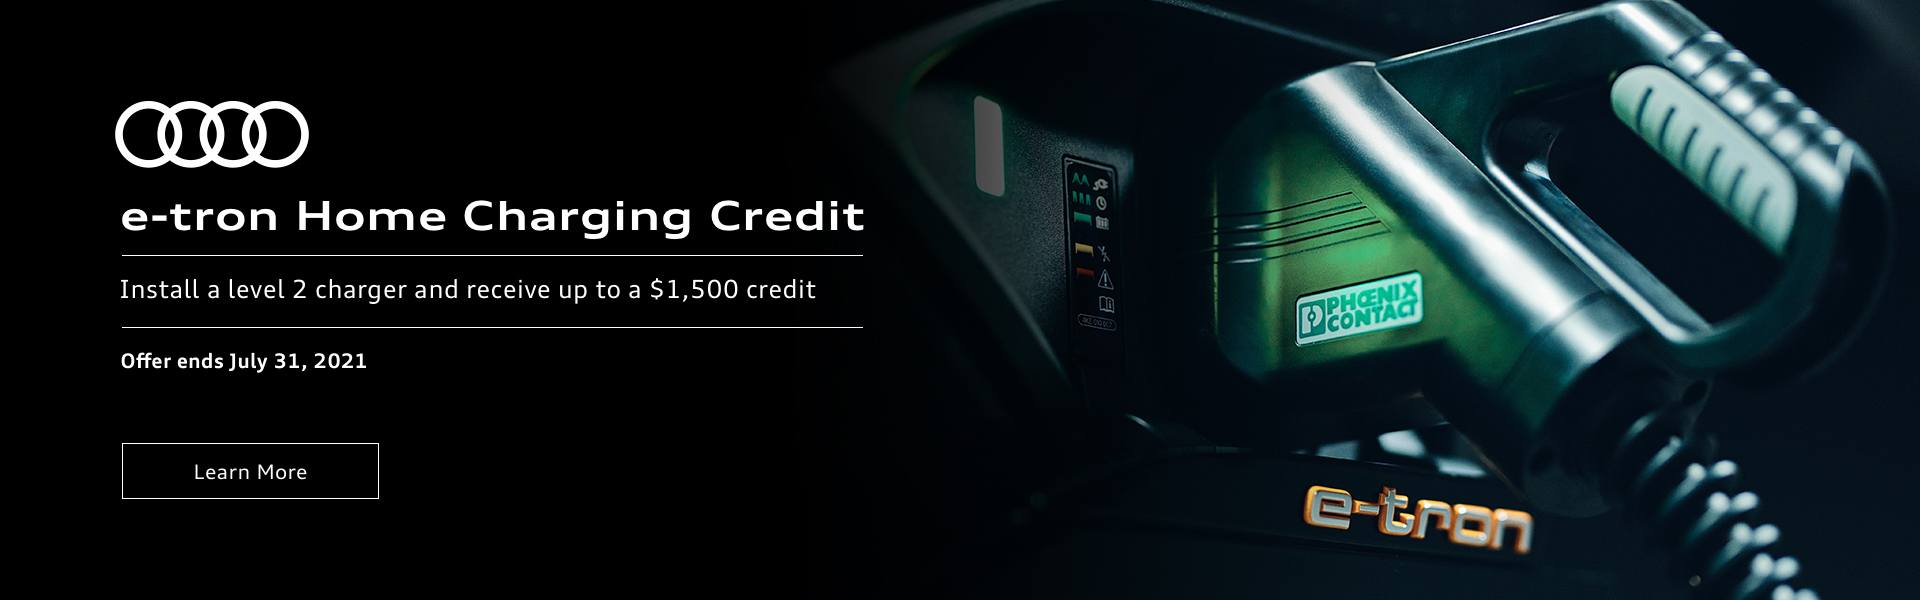 e-tron Audi Home Charging Credit Promotional Banner